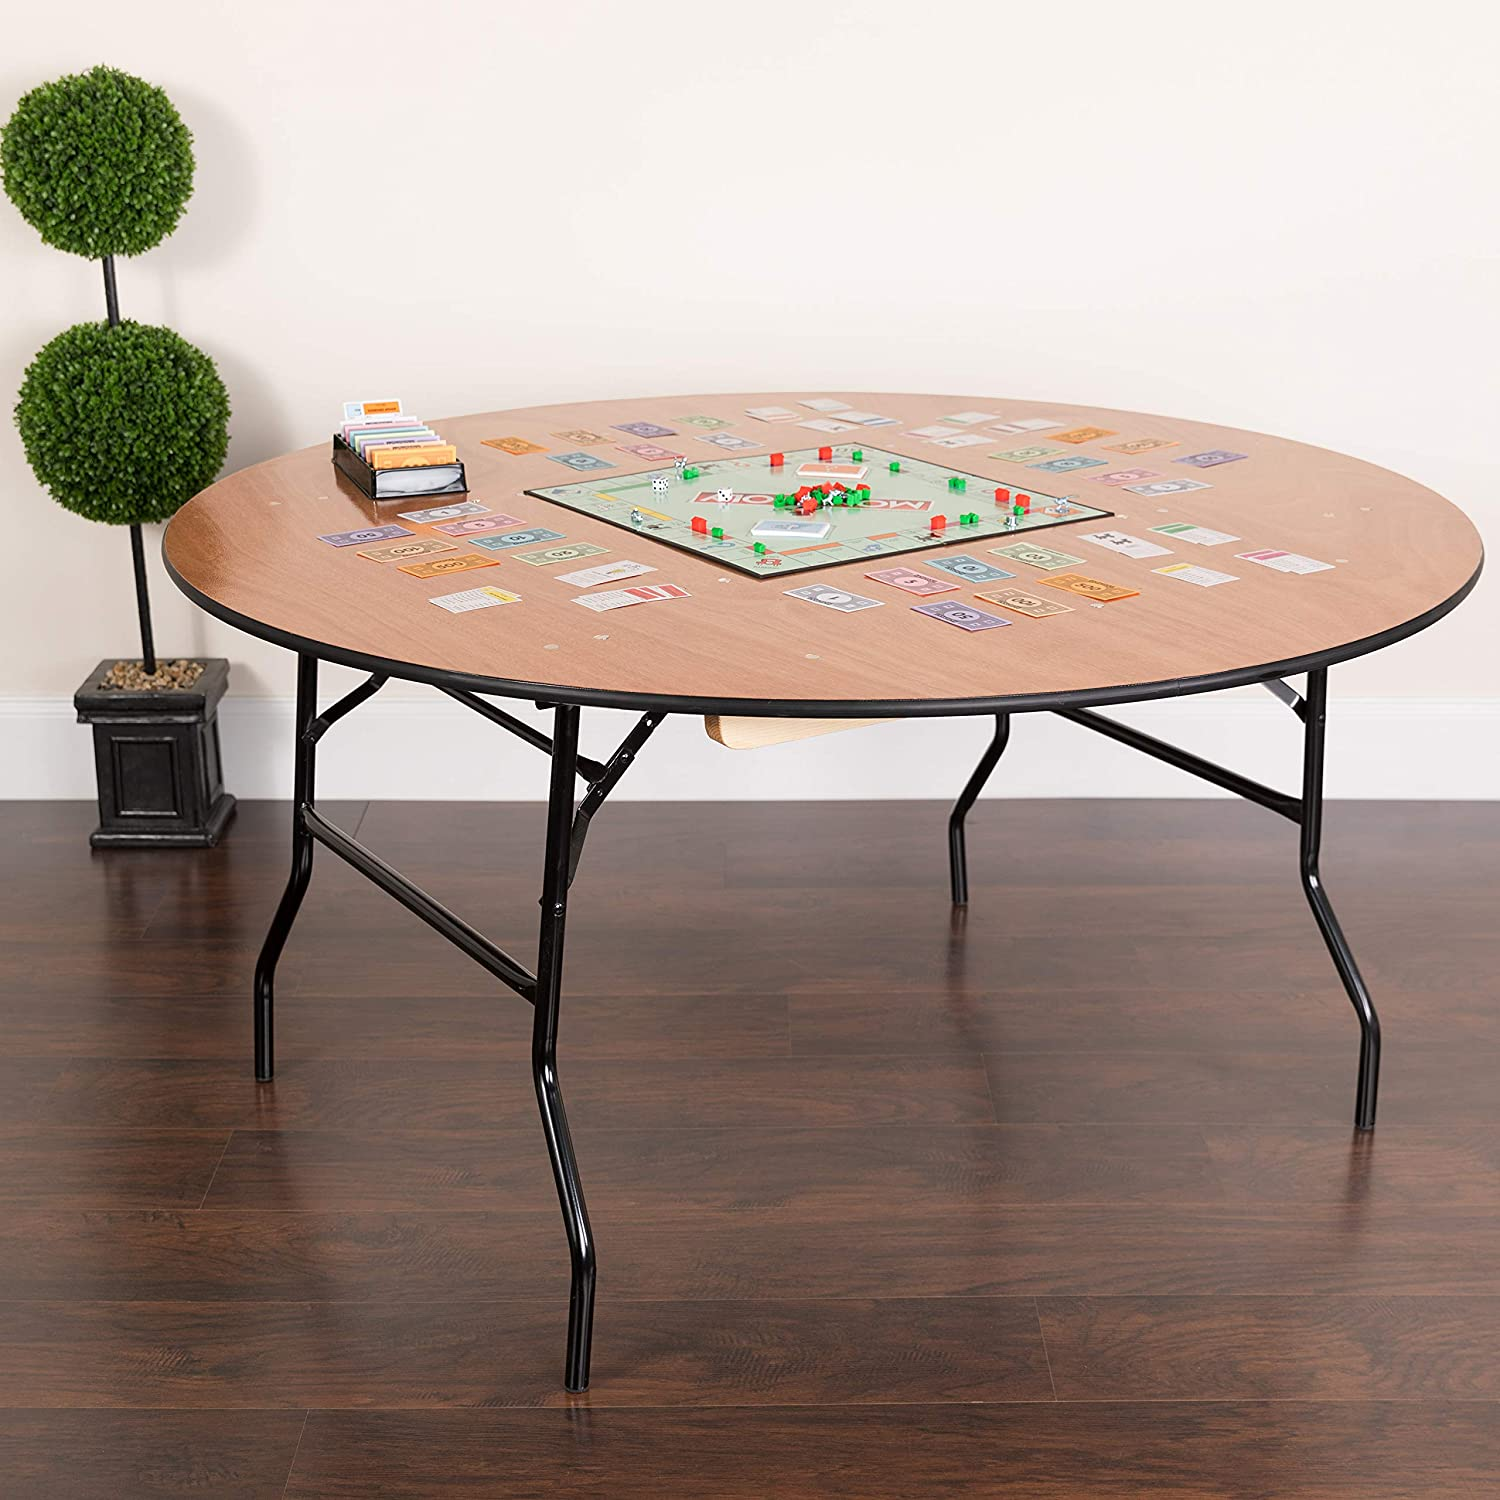 Flash Furniture 5-Foot Round Wood Folding Banquet Table with Clear Coated Finished Top